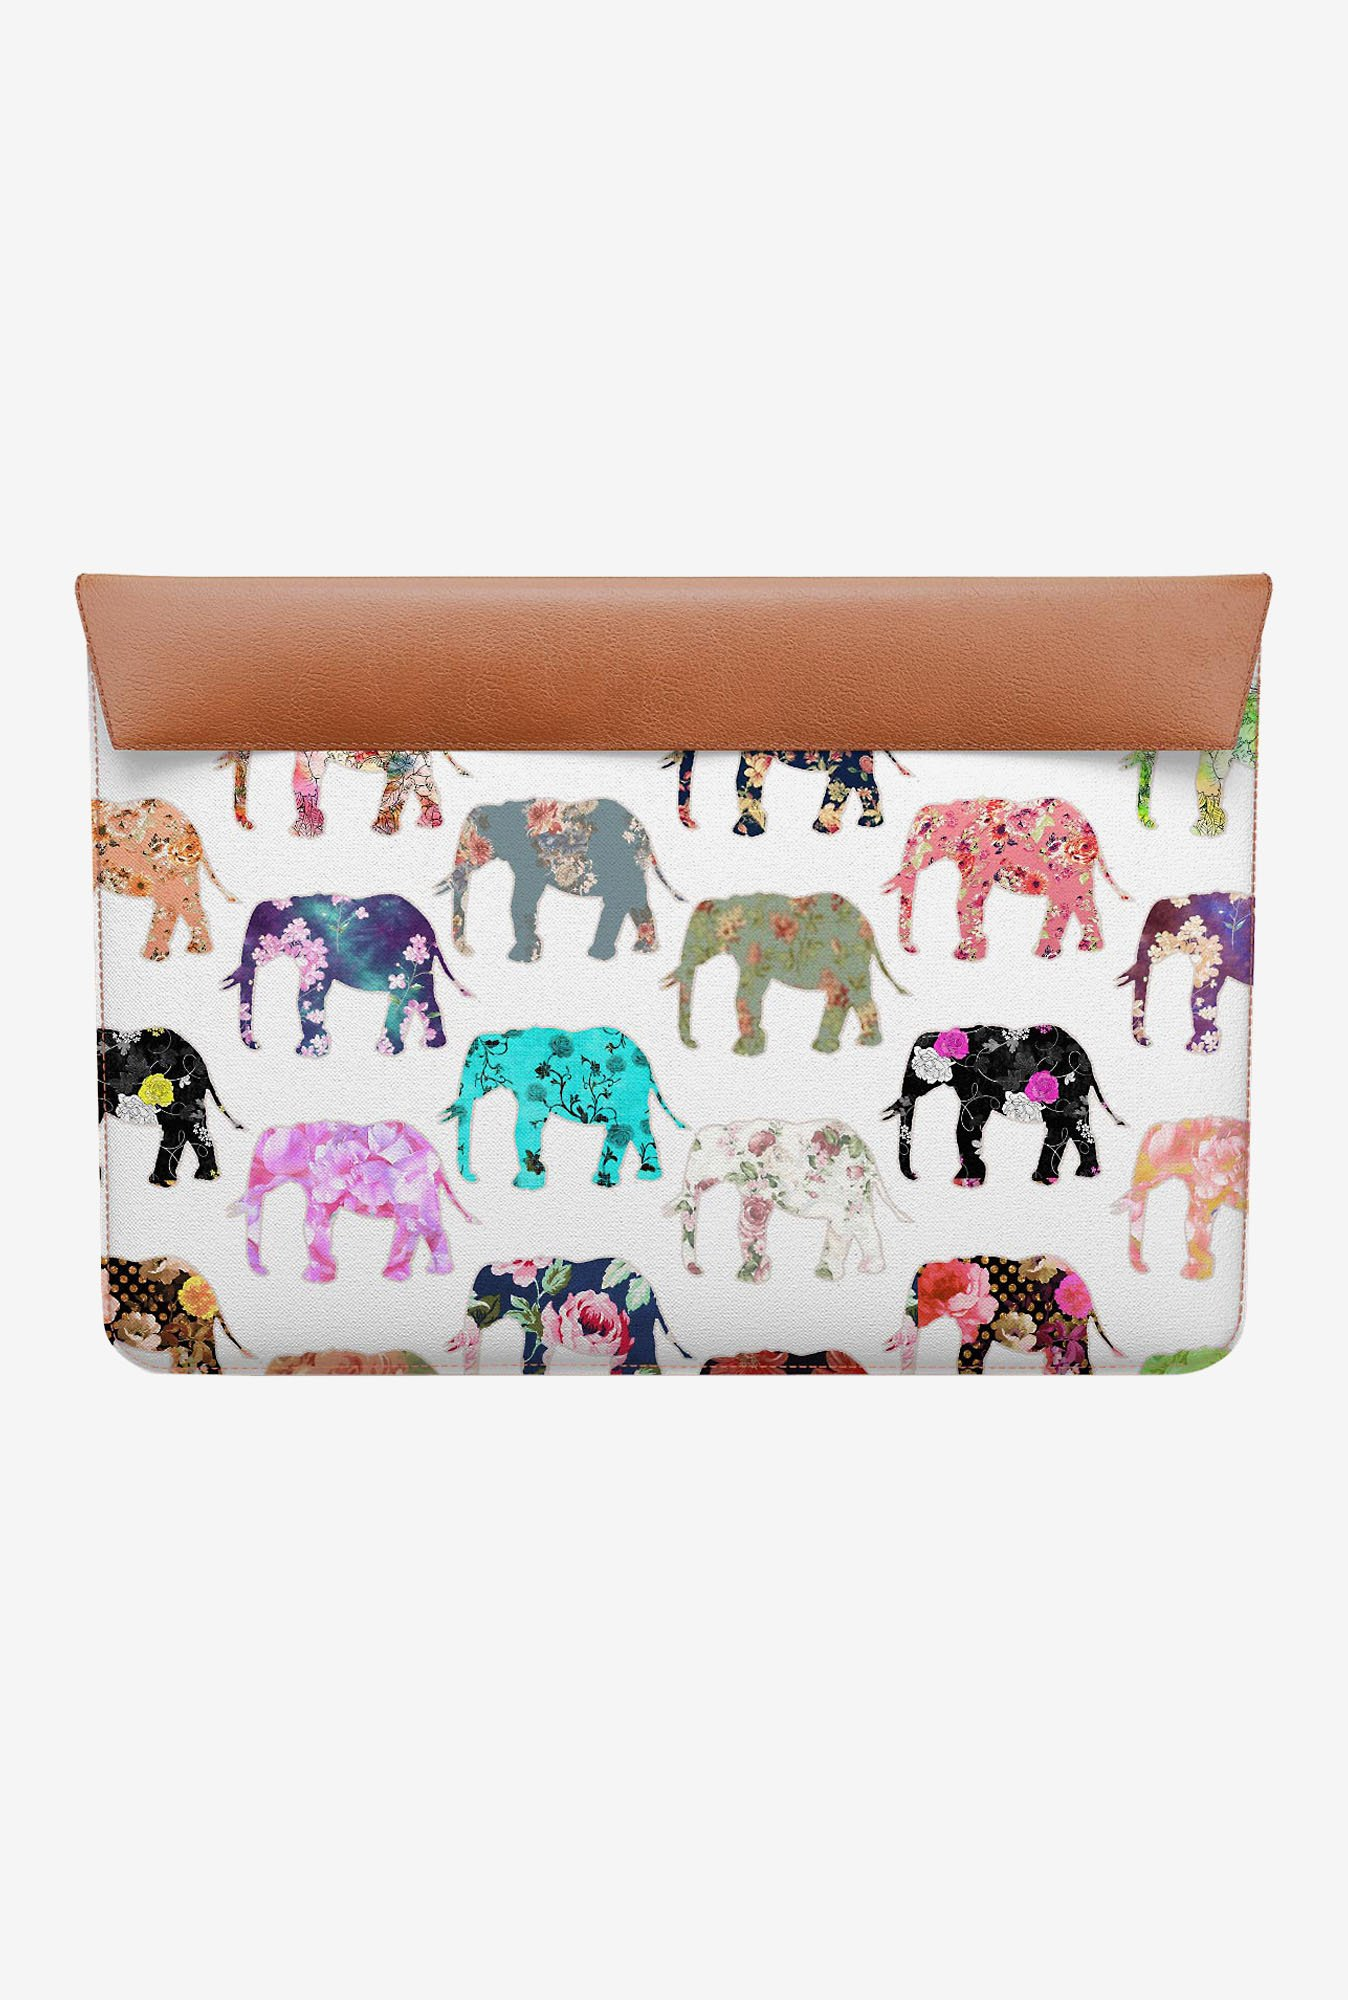 DailyObjects Floral Elephant MacBook Air 11 Envelope Sleeve